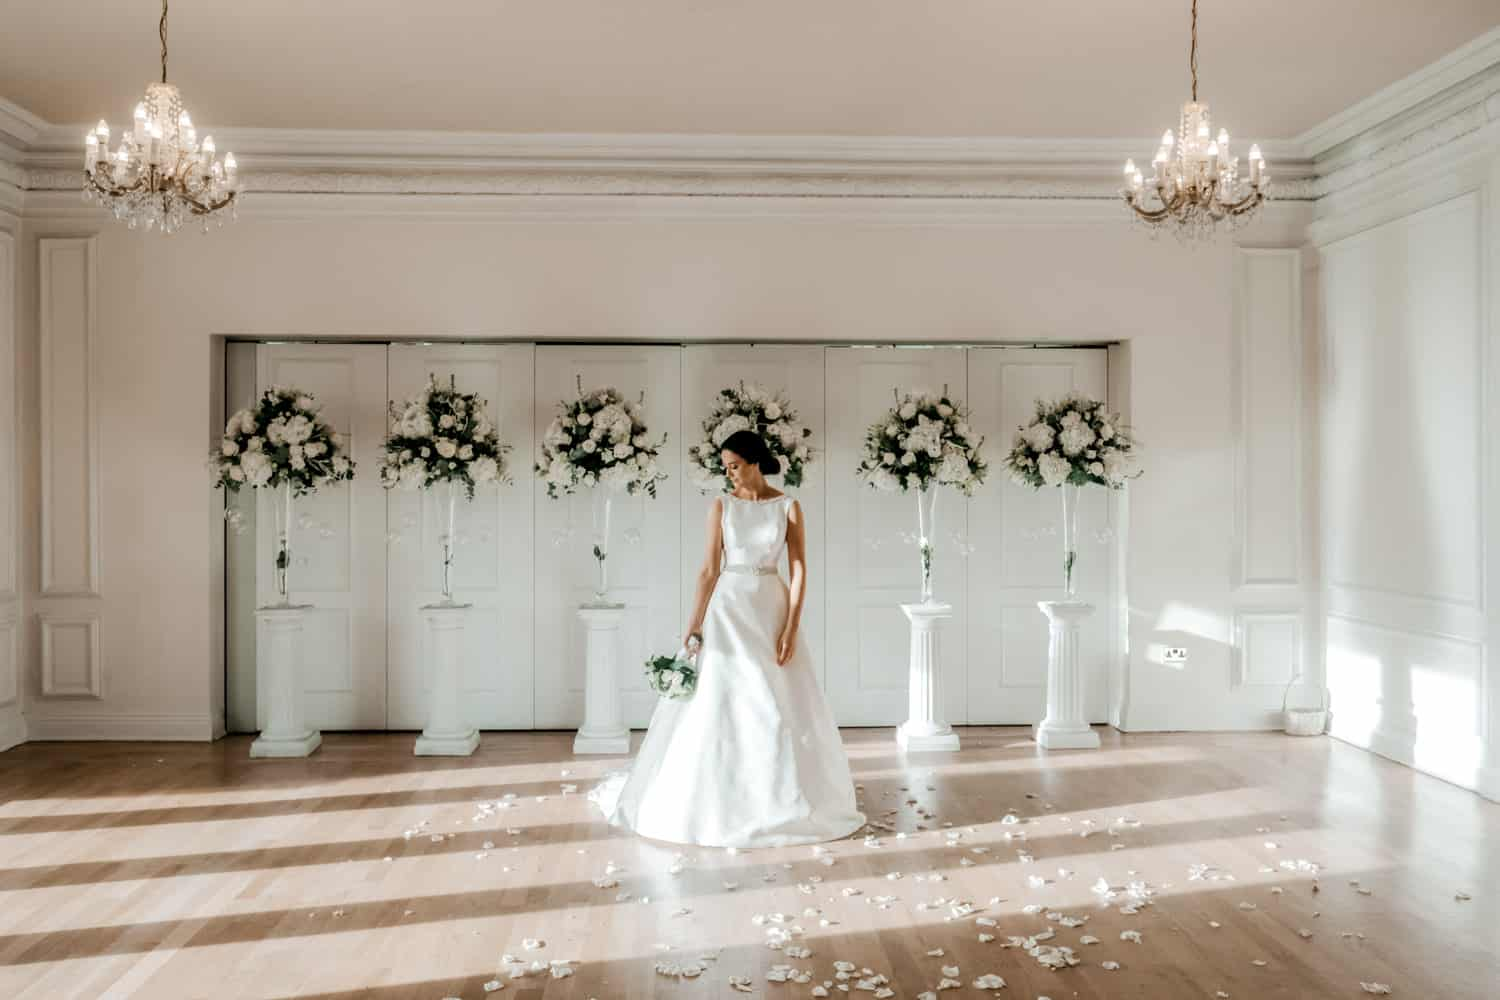 stunning indoor bride portrait